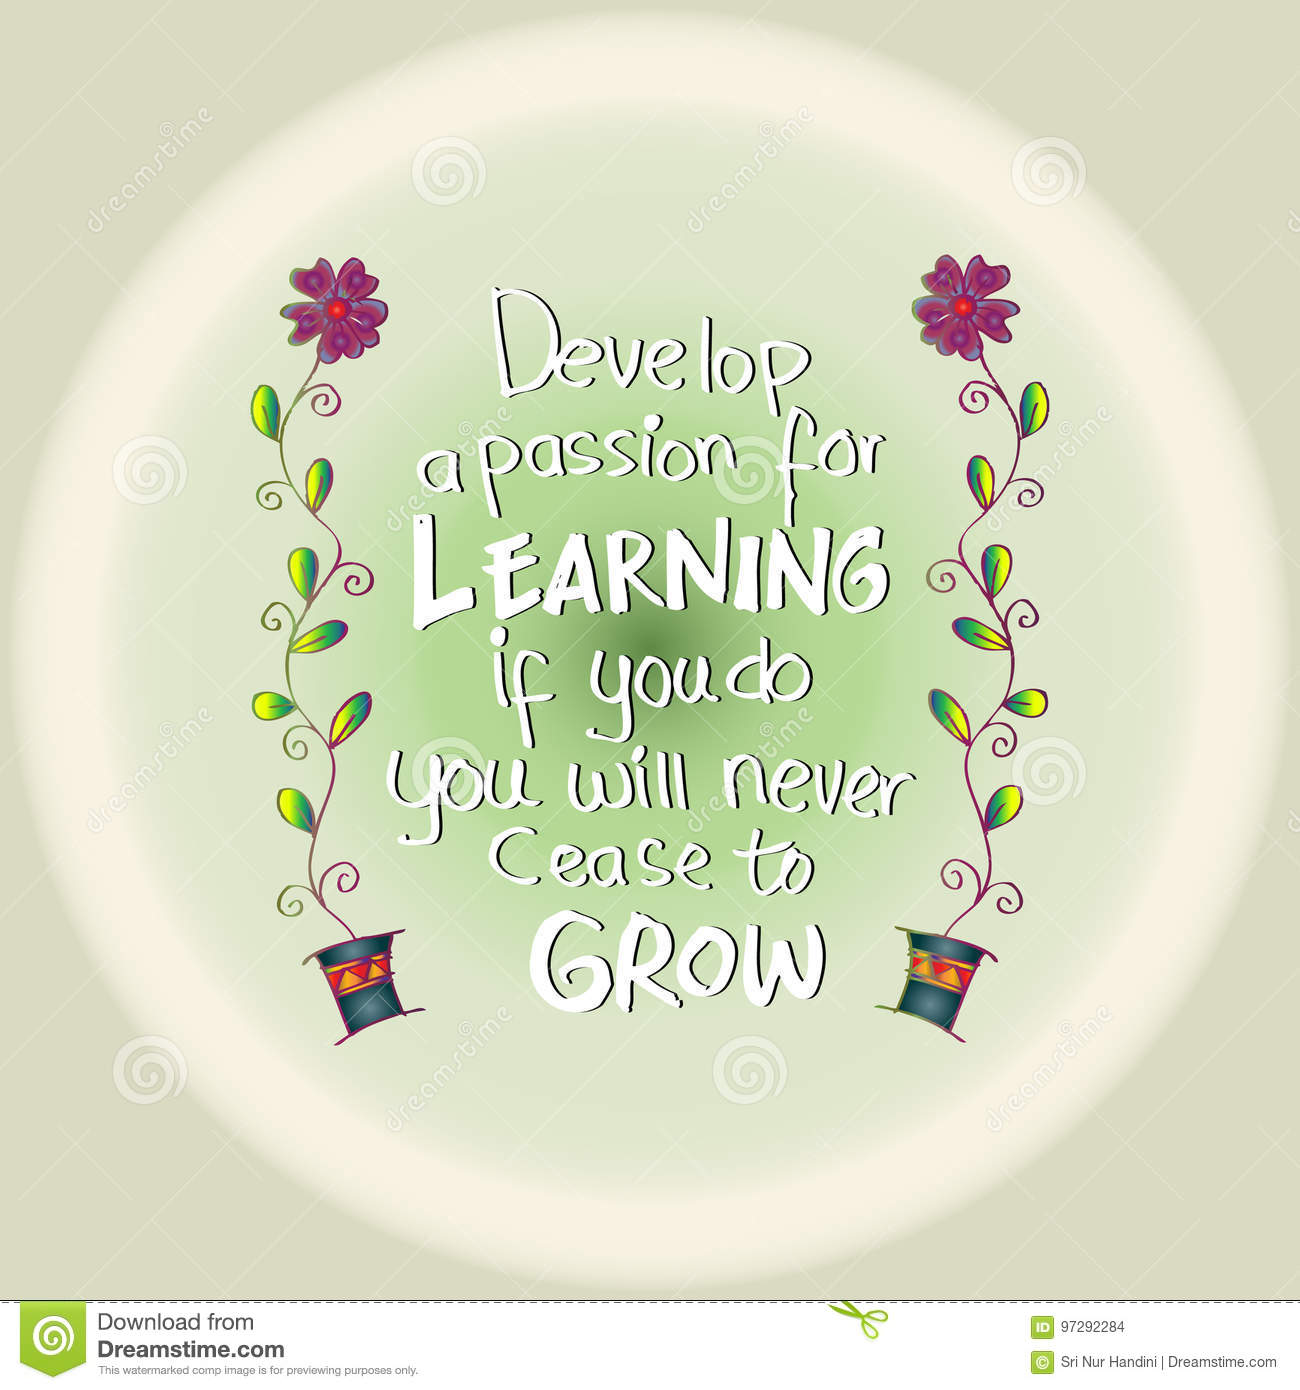 A Passion For develop a passion for learning. if you do, you will never